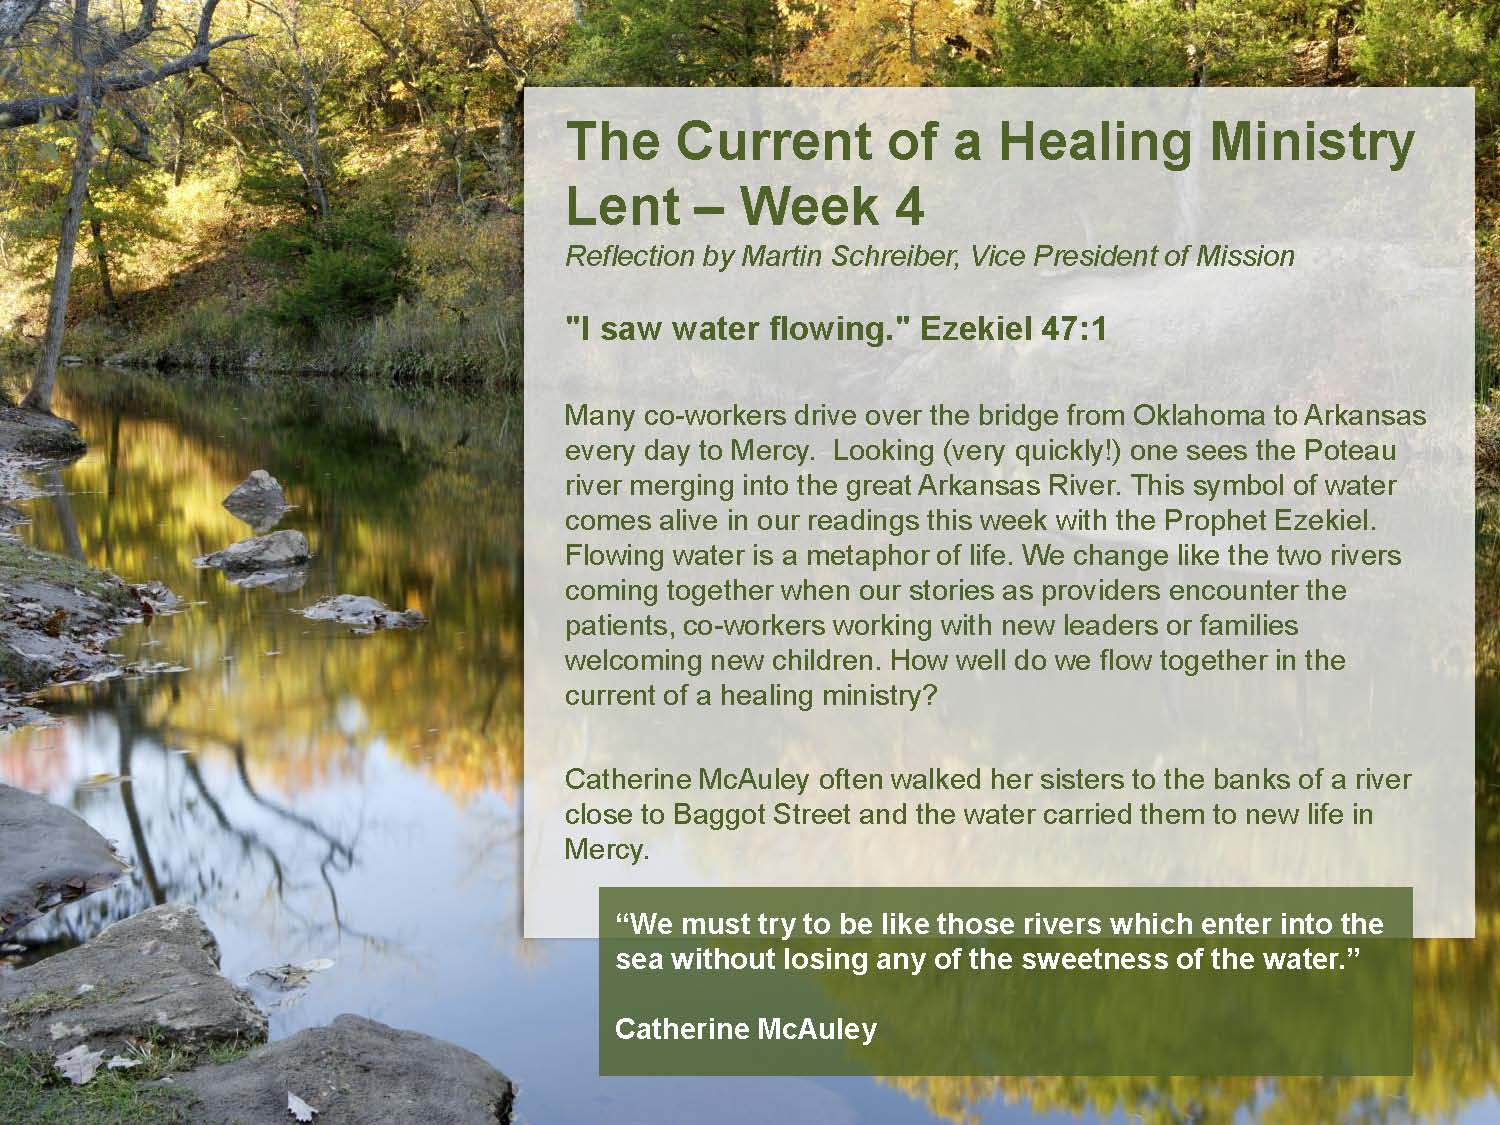 The Current of a Healing Ministry